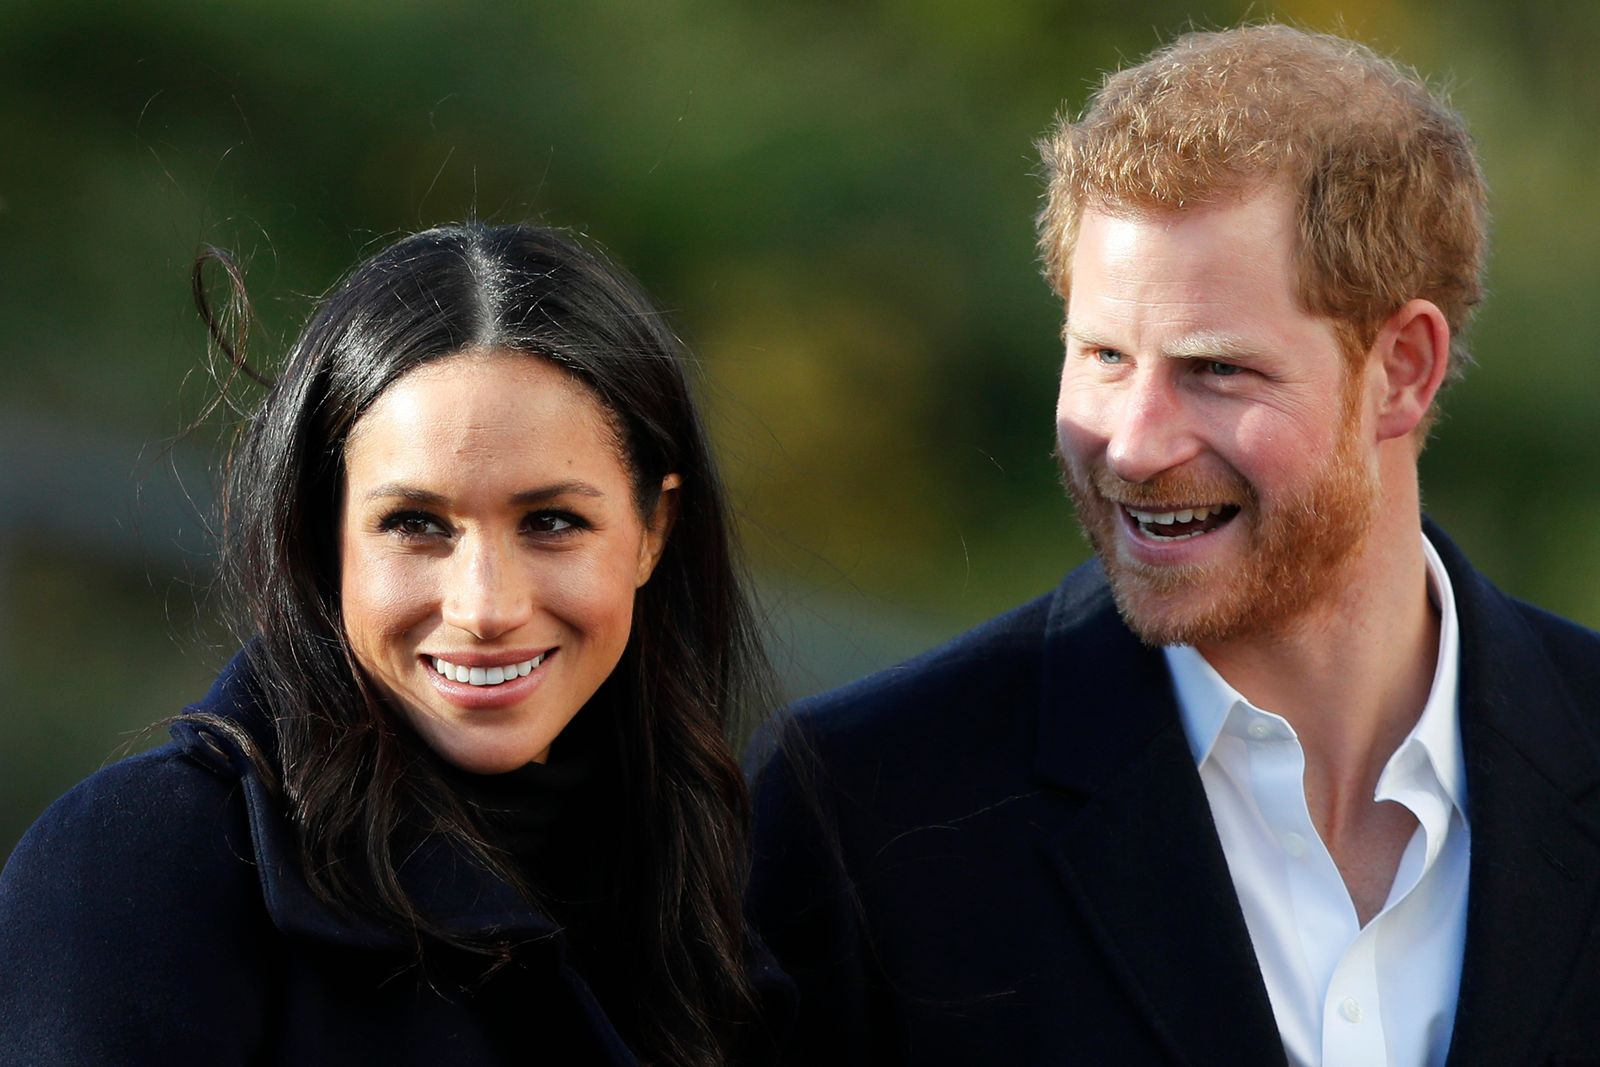 FILE - In this Dec. 1, 2017 file photo, Britain's Prince Harry and his fiancee Meghan Markle arrive at Nottingham Academy in Nottingham, England.{ } (AP Photo/Frank Augstein, File)